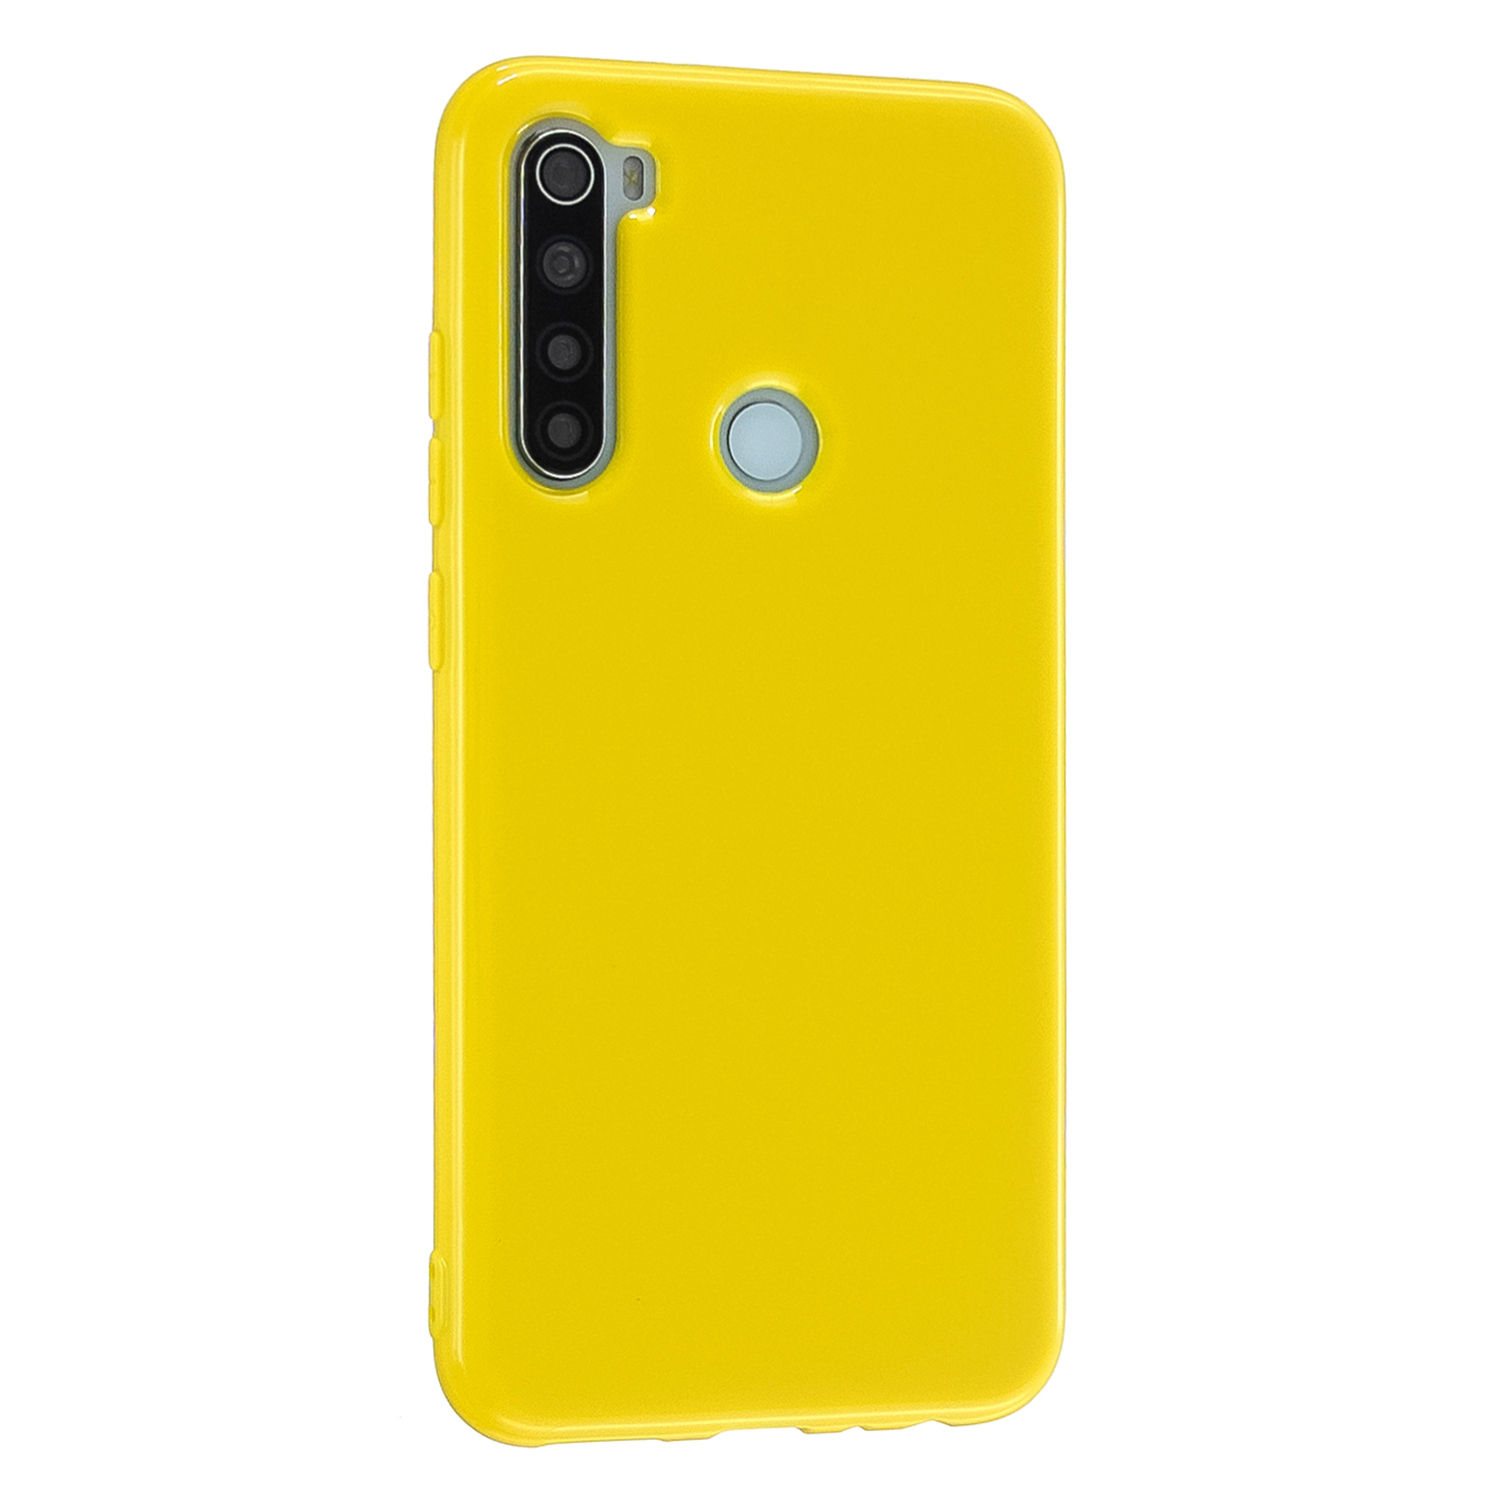 For Redmi Note 8/8 Pro Cellphone Cover 2.0mm Thickened TPU Case Camera Protector Anti-Scratch Soft Phone Shell Yellow